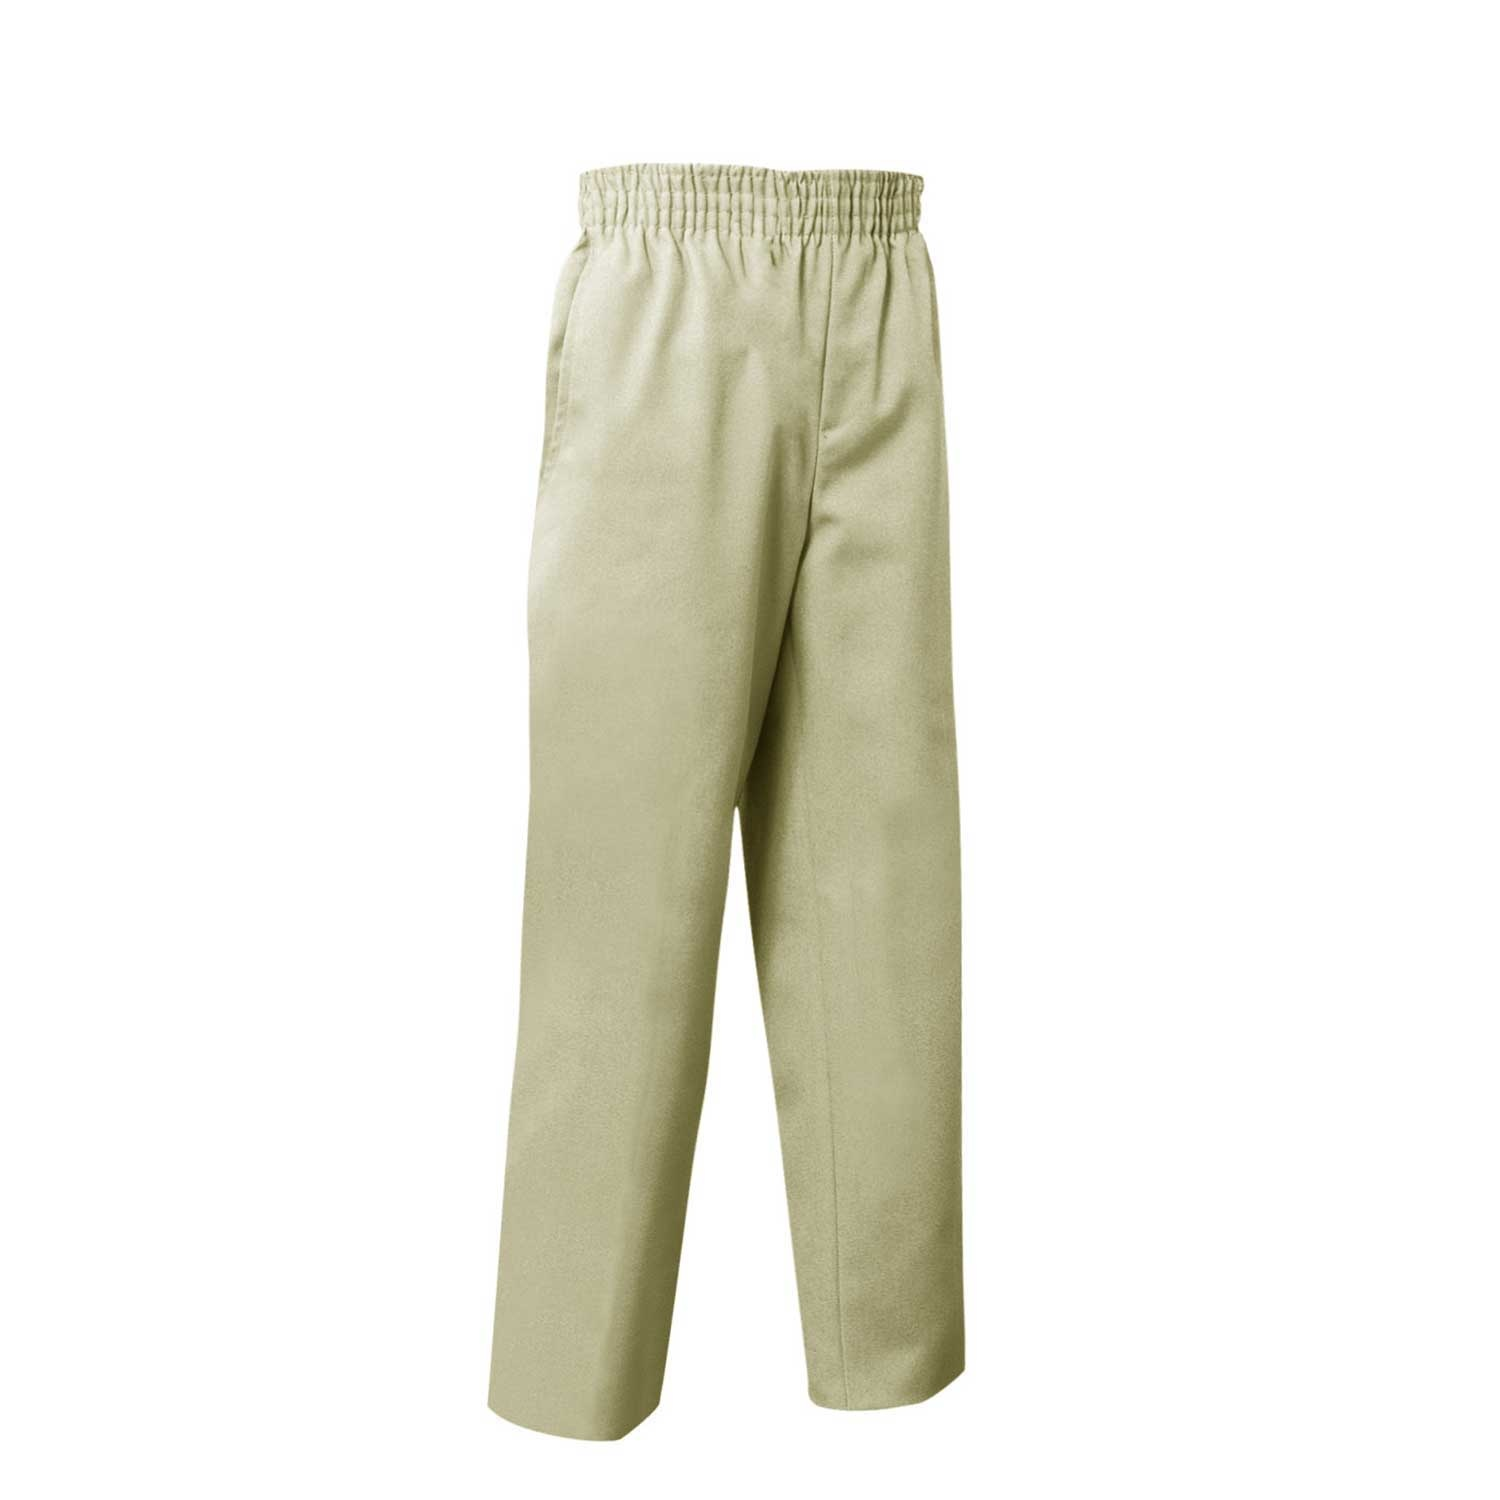 Pull-On Pants  (7059D) Khaki